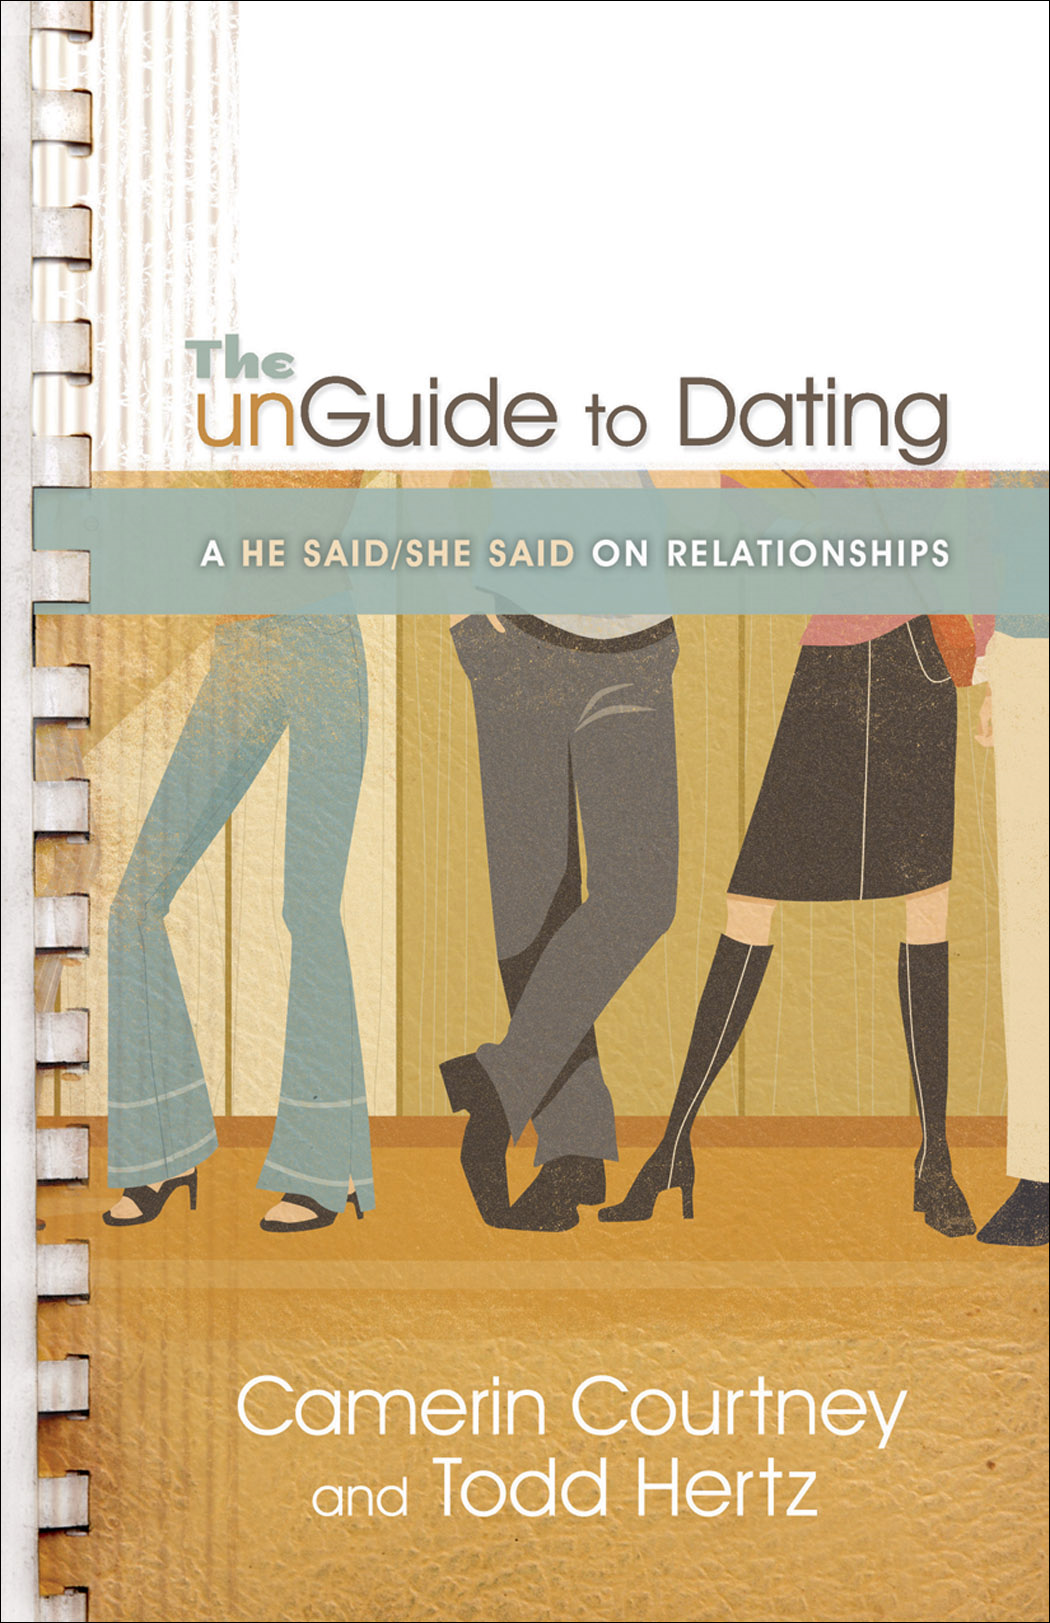 unGuide to Dating, The